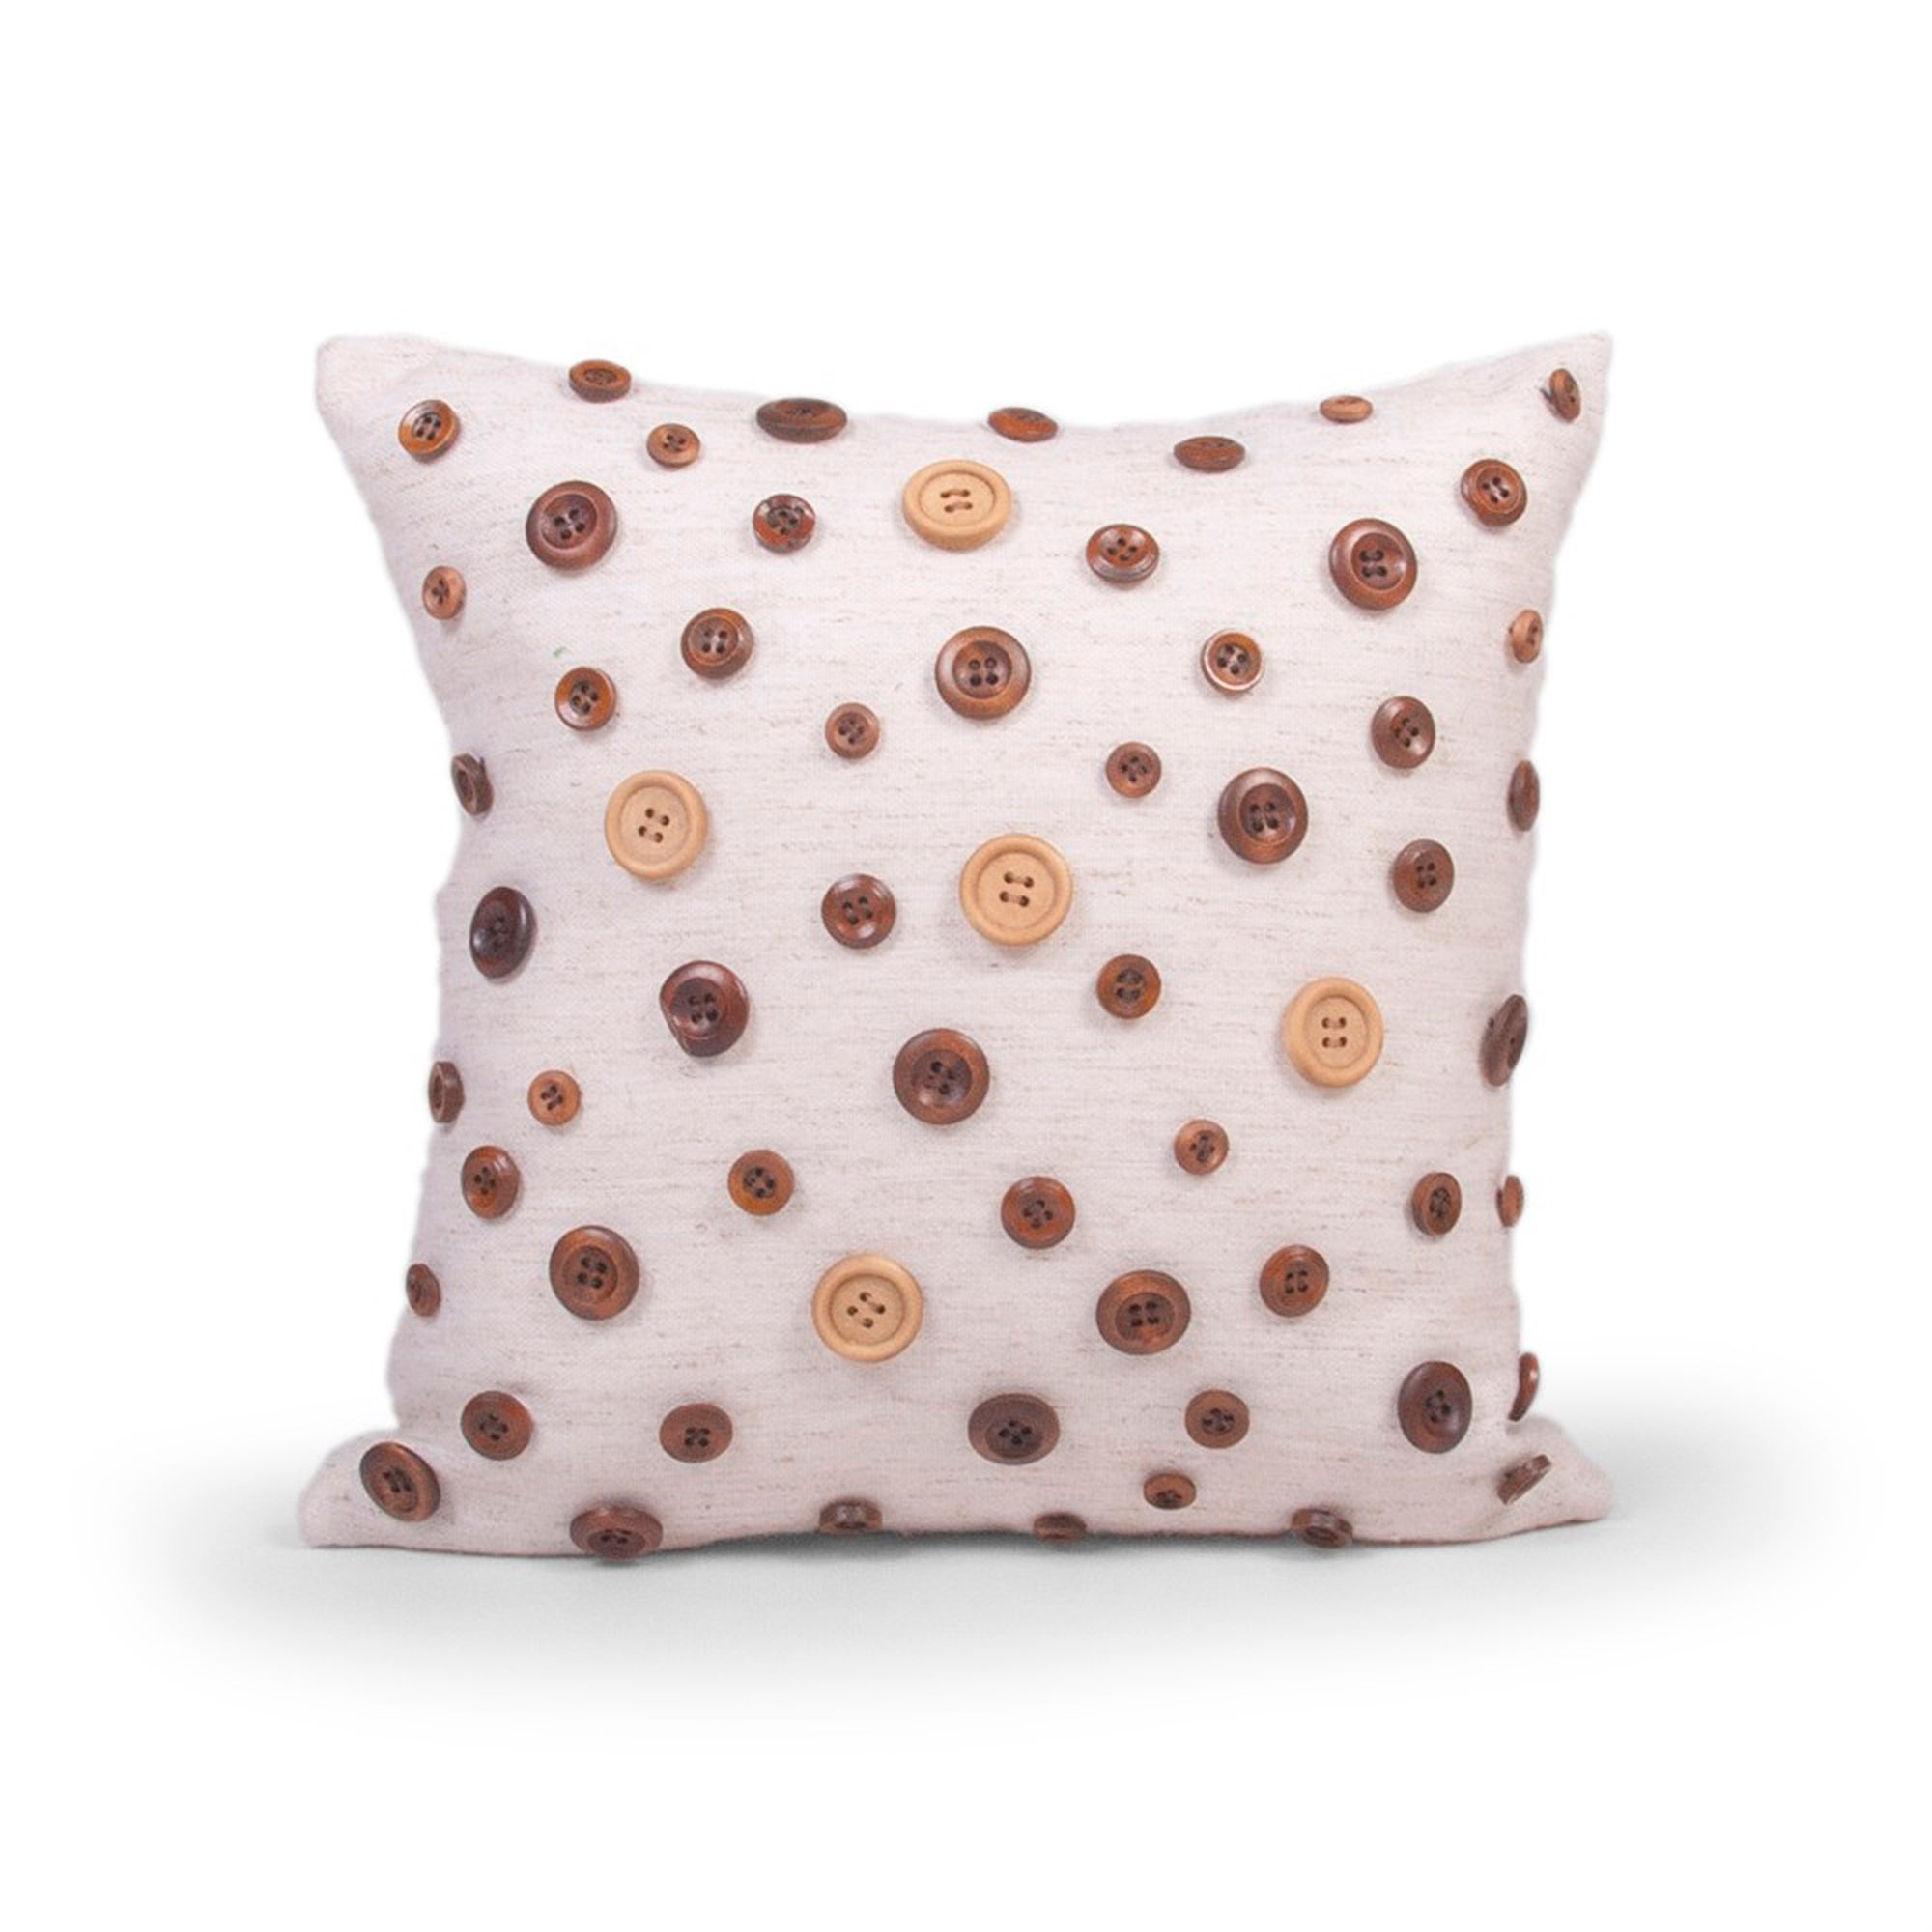 Bolton Cushion